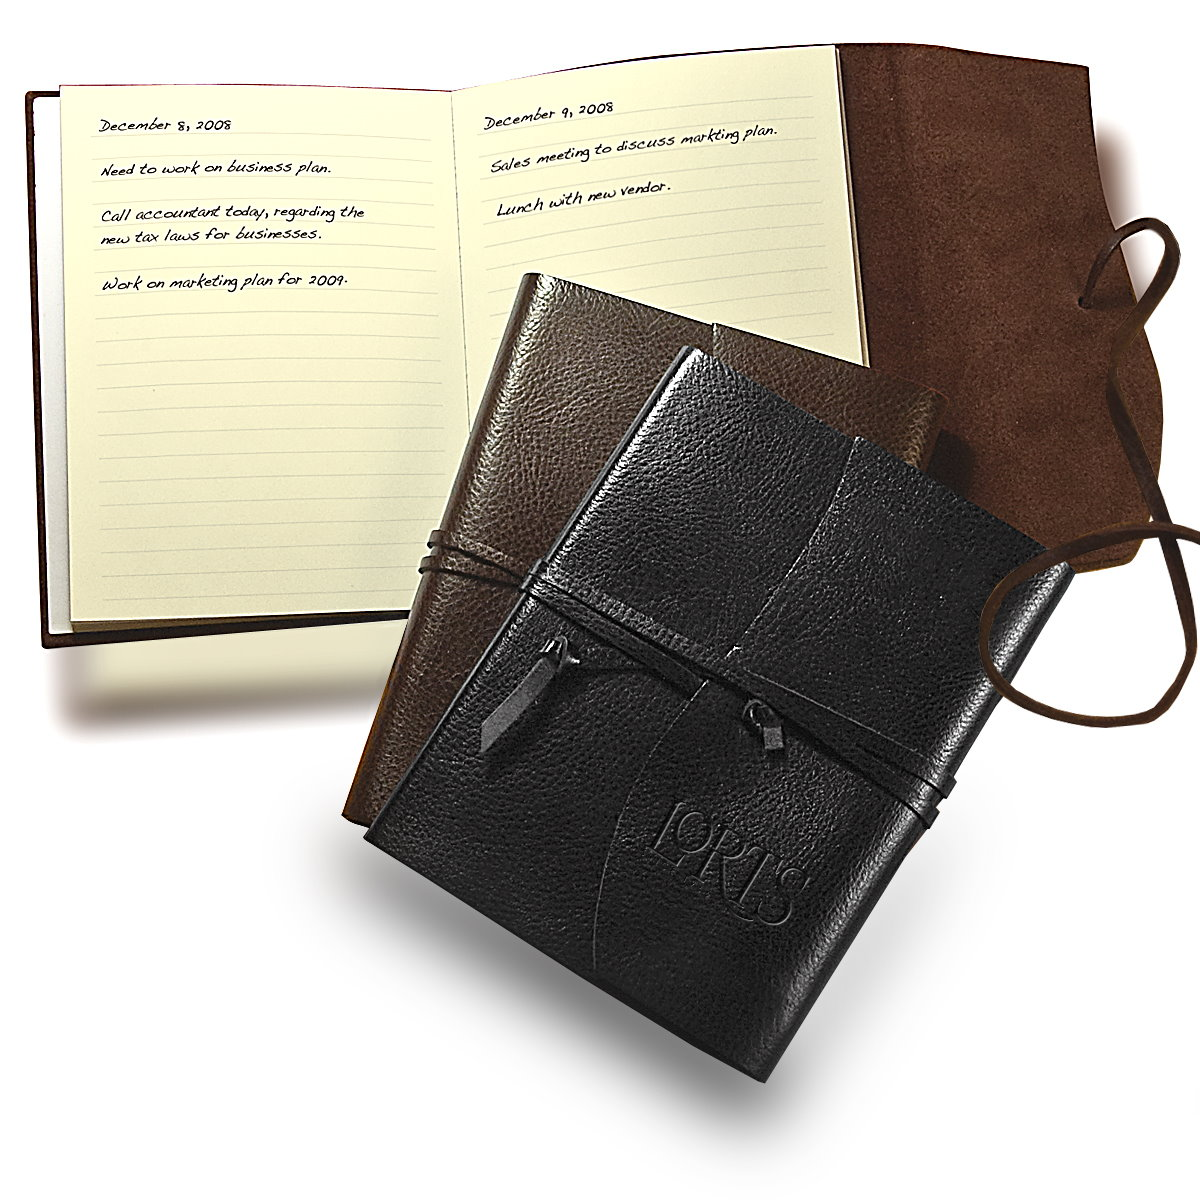 Chocolates Leather Wrapped Journal Gift Set Image 2